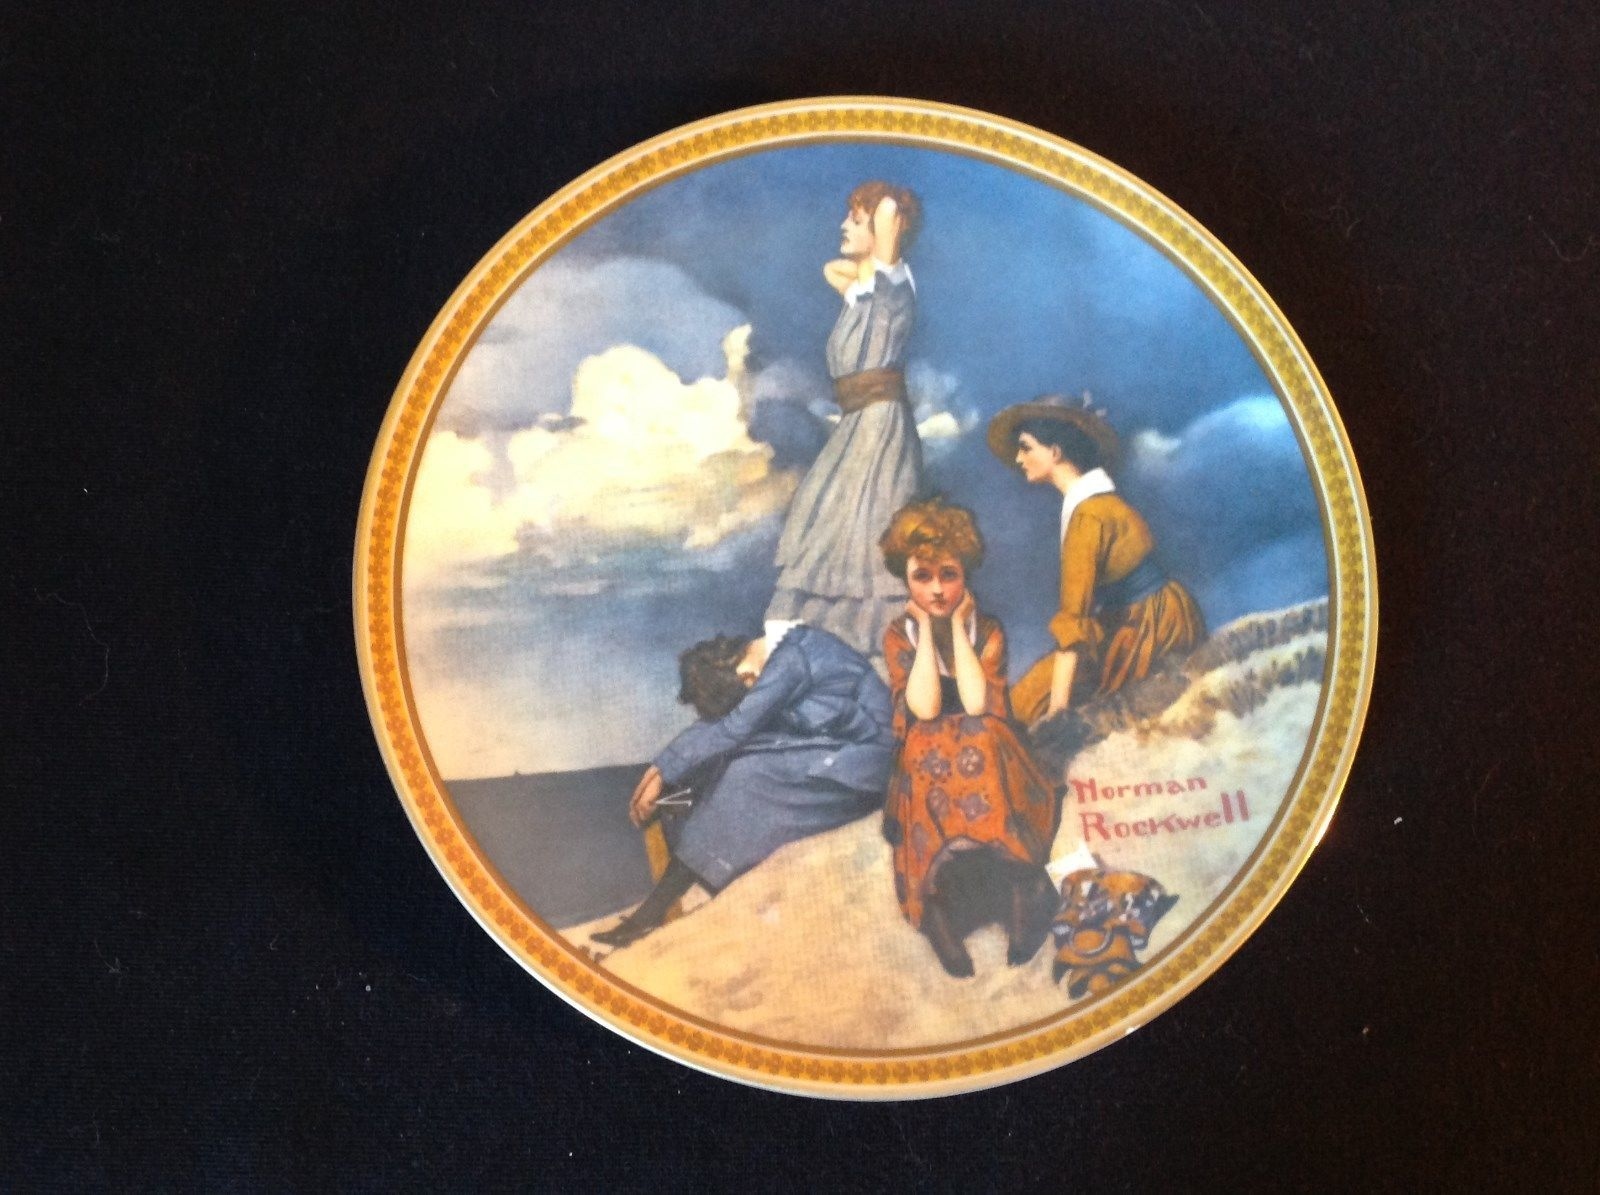 Norman Rockwell Limited Edition Plate Waiting on the Shore Official Seal on Back